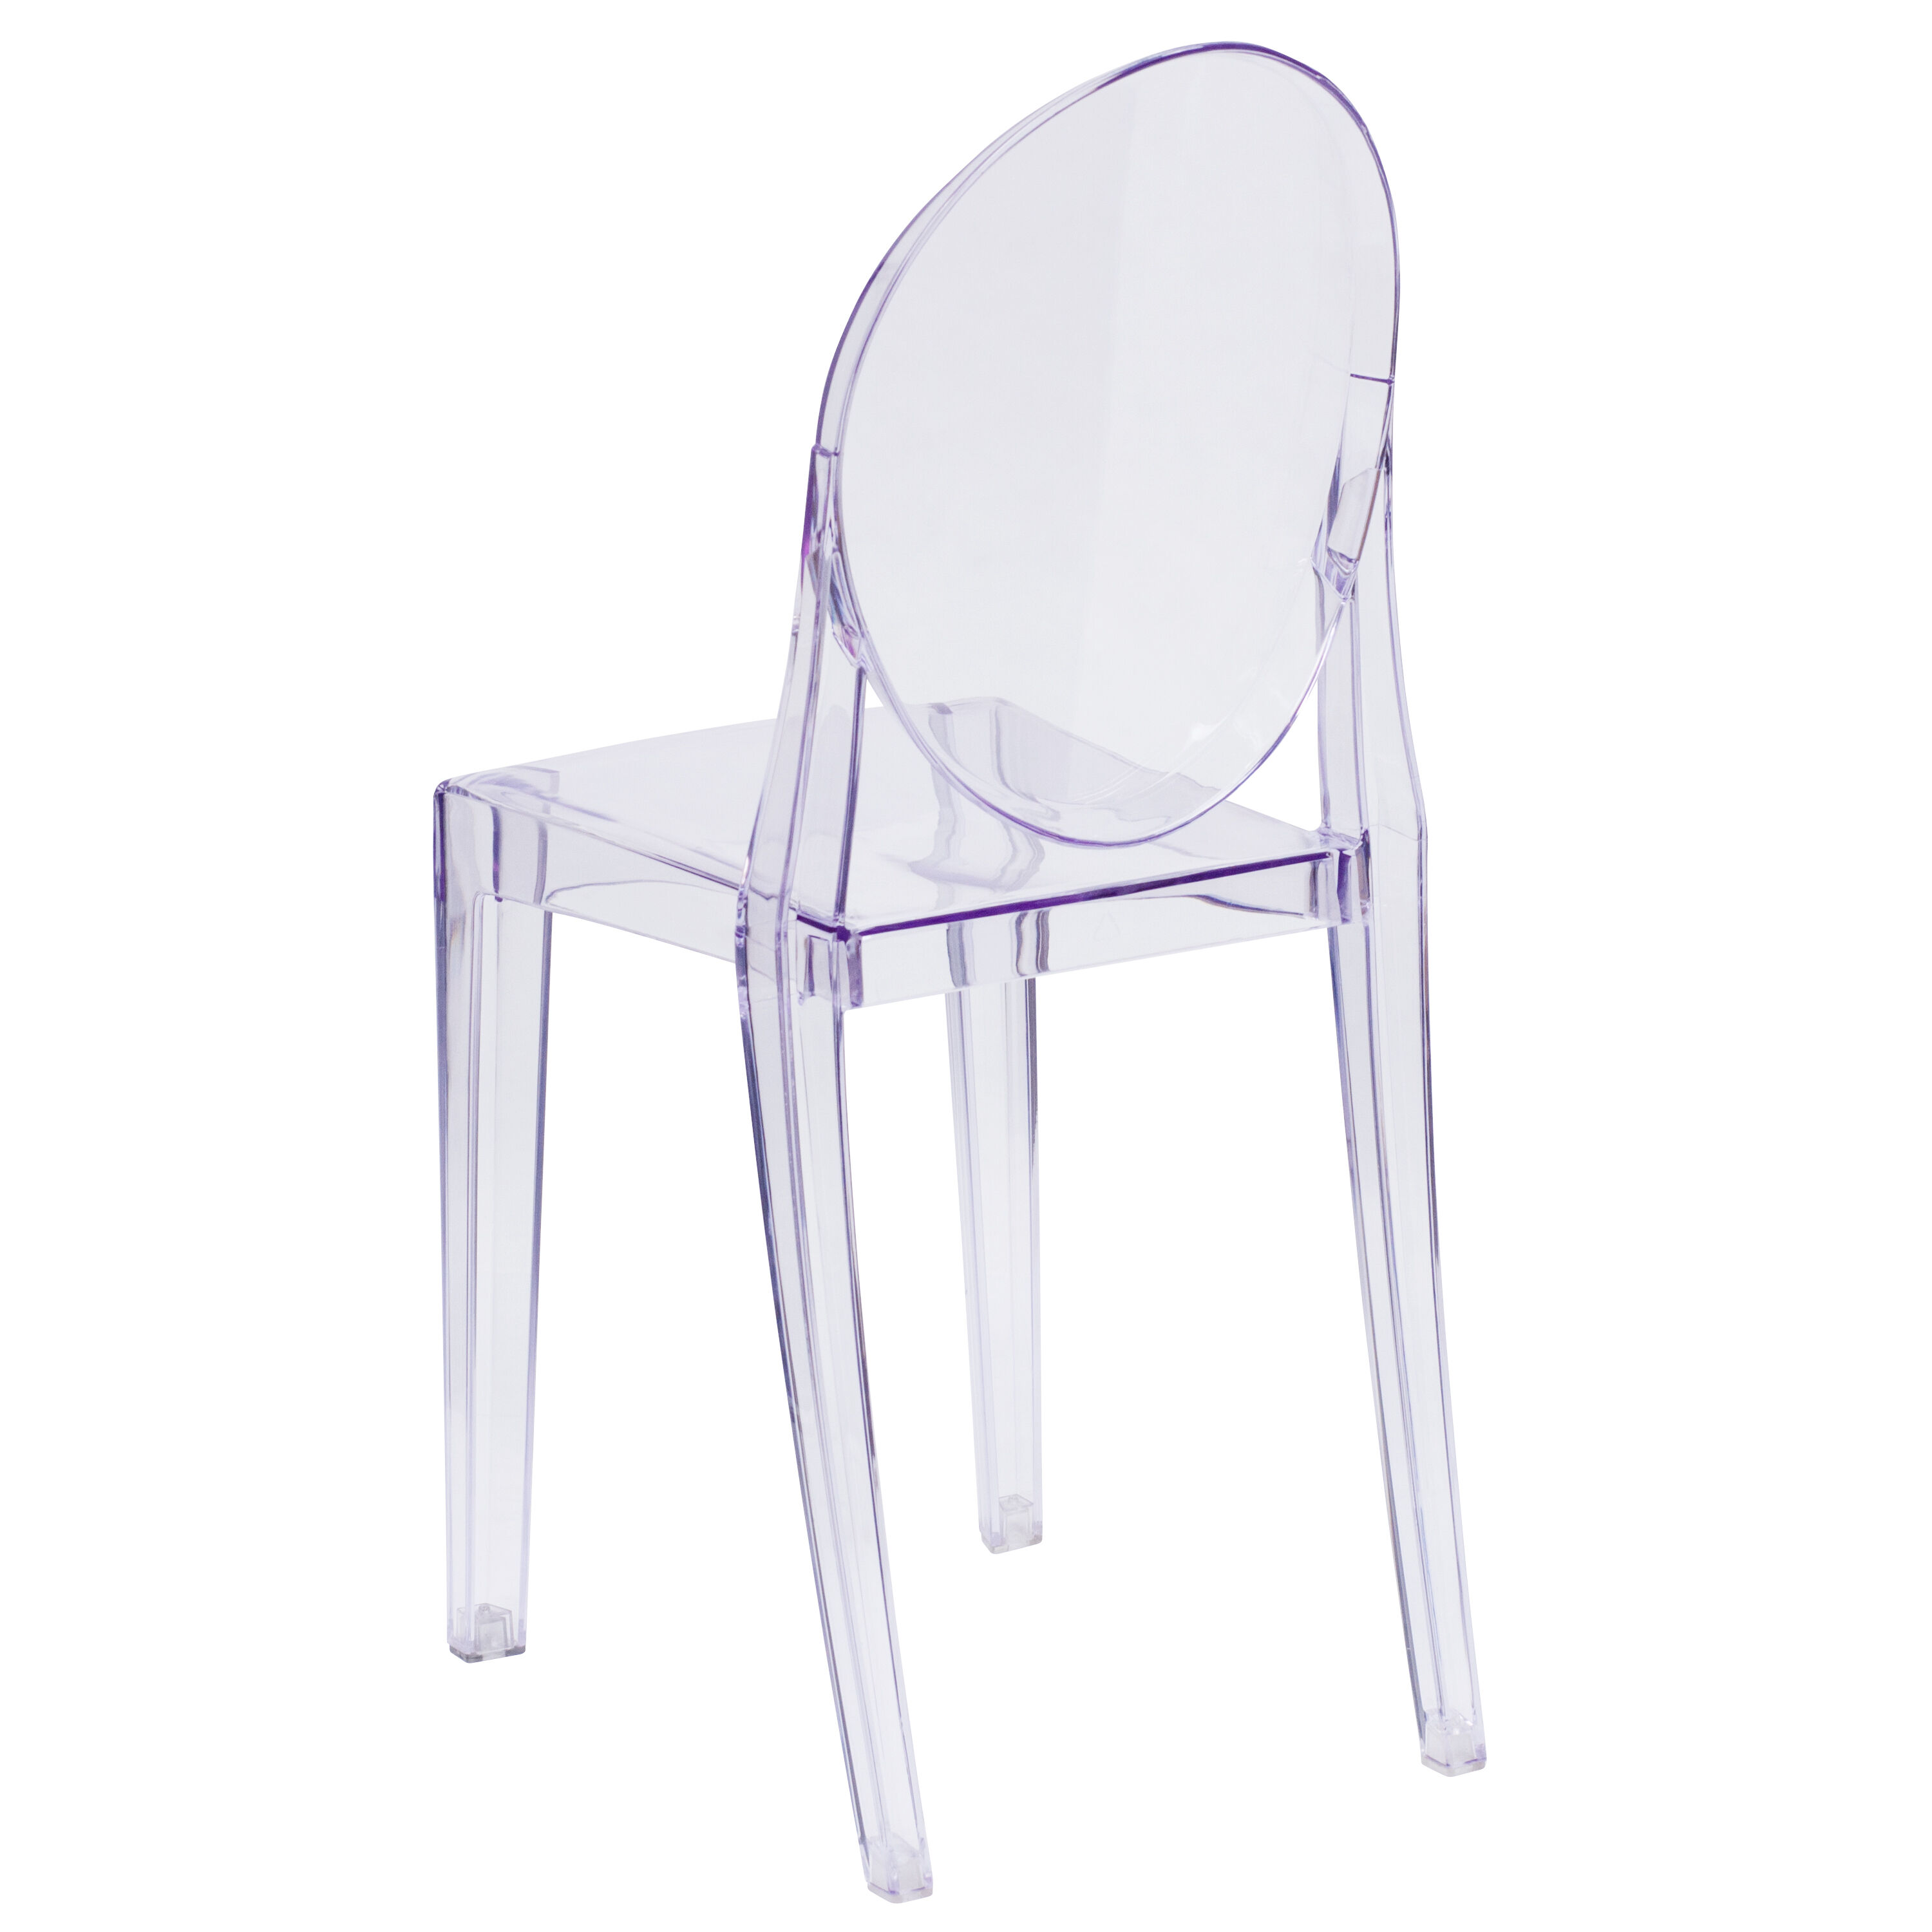 Wonderful Our Ghost Side Chair In Transparent Crystal Is On Sale Now.